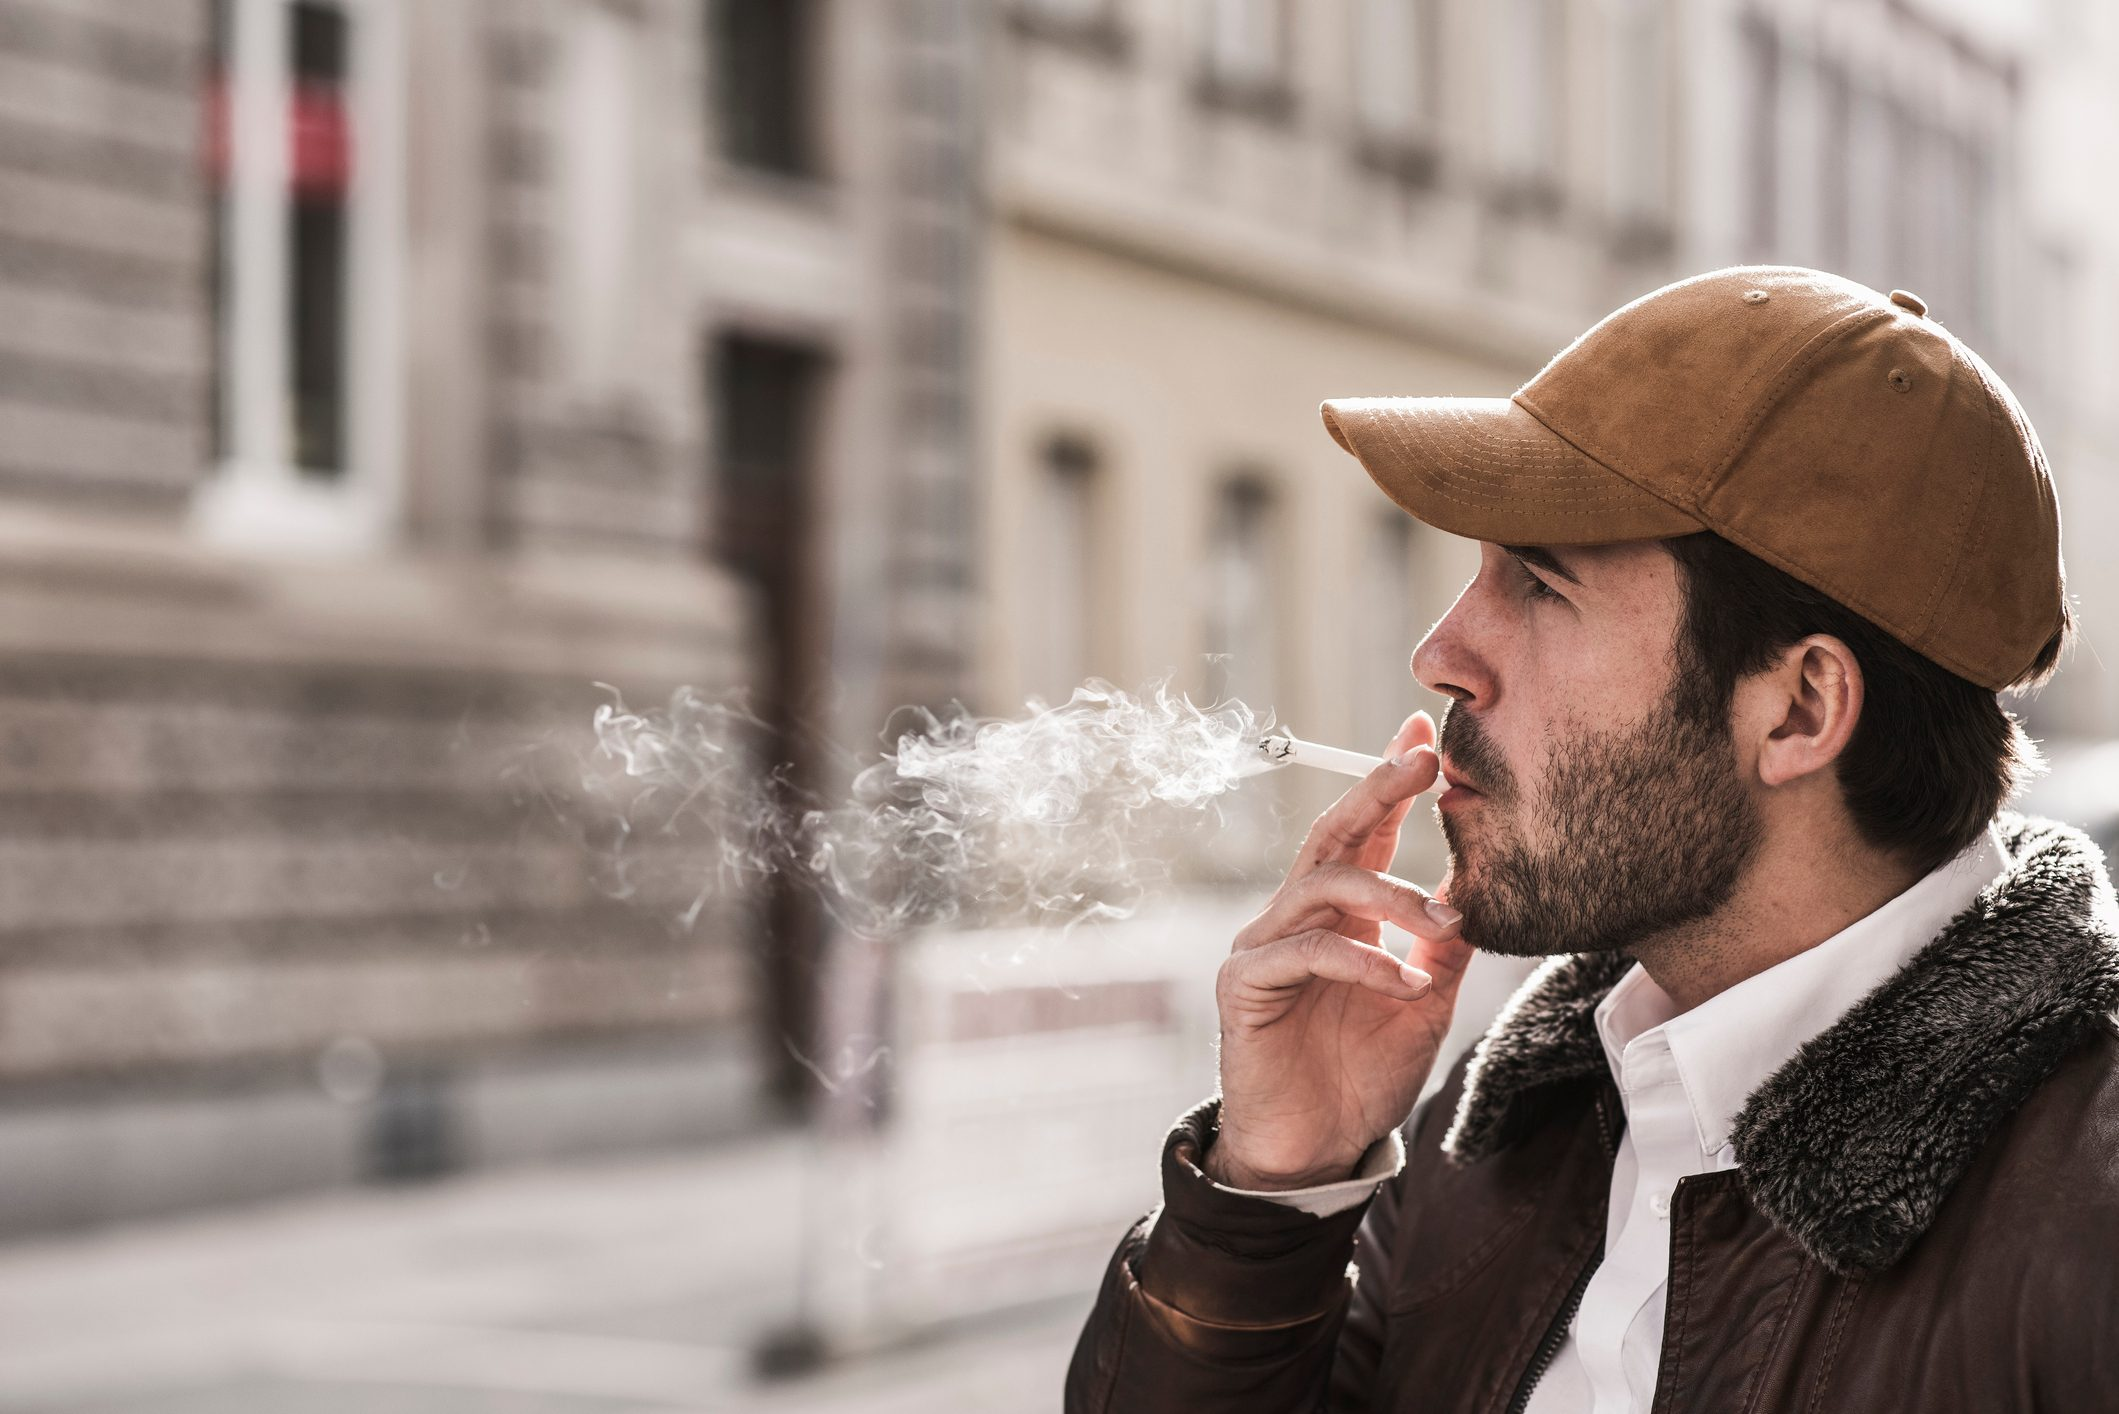 Portrait of young man with baseball cap smoking cigarette